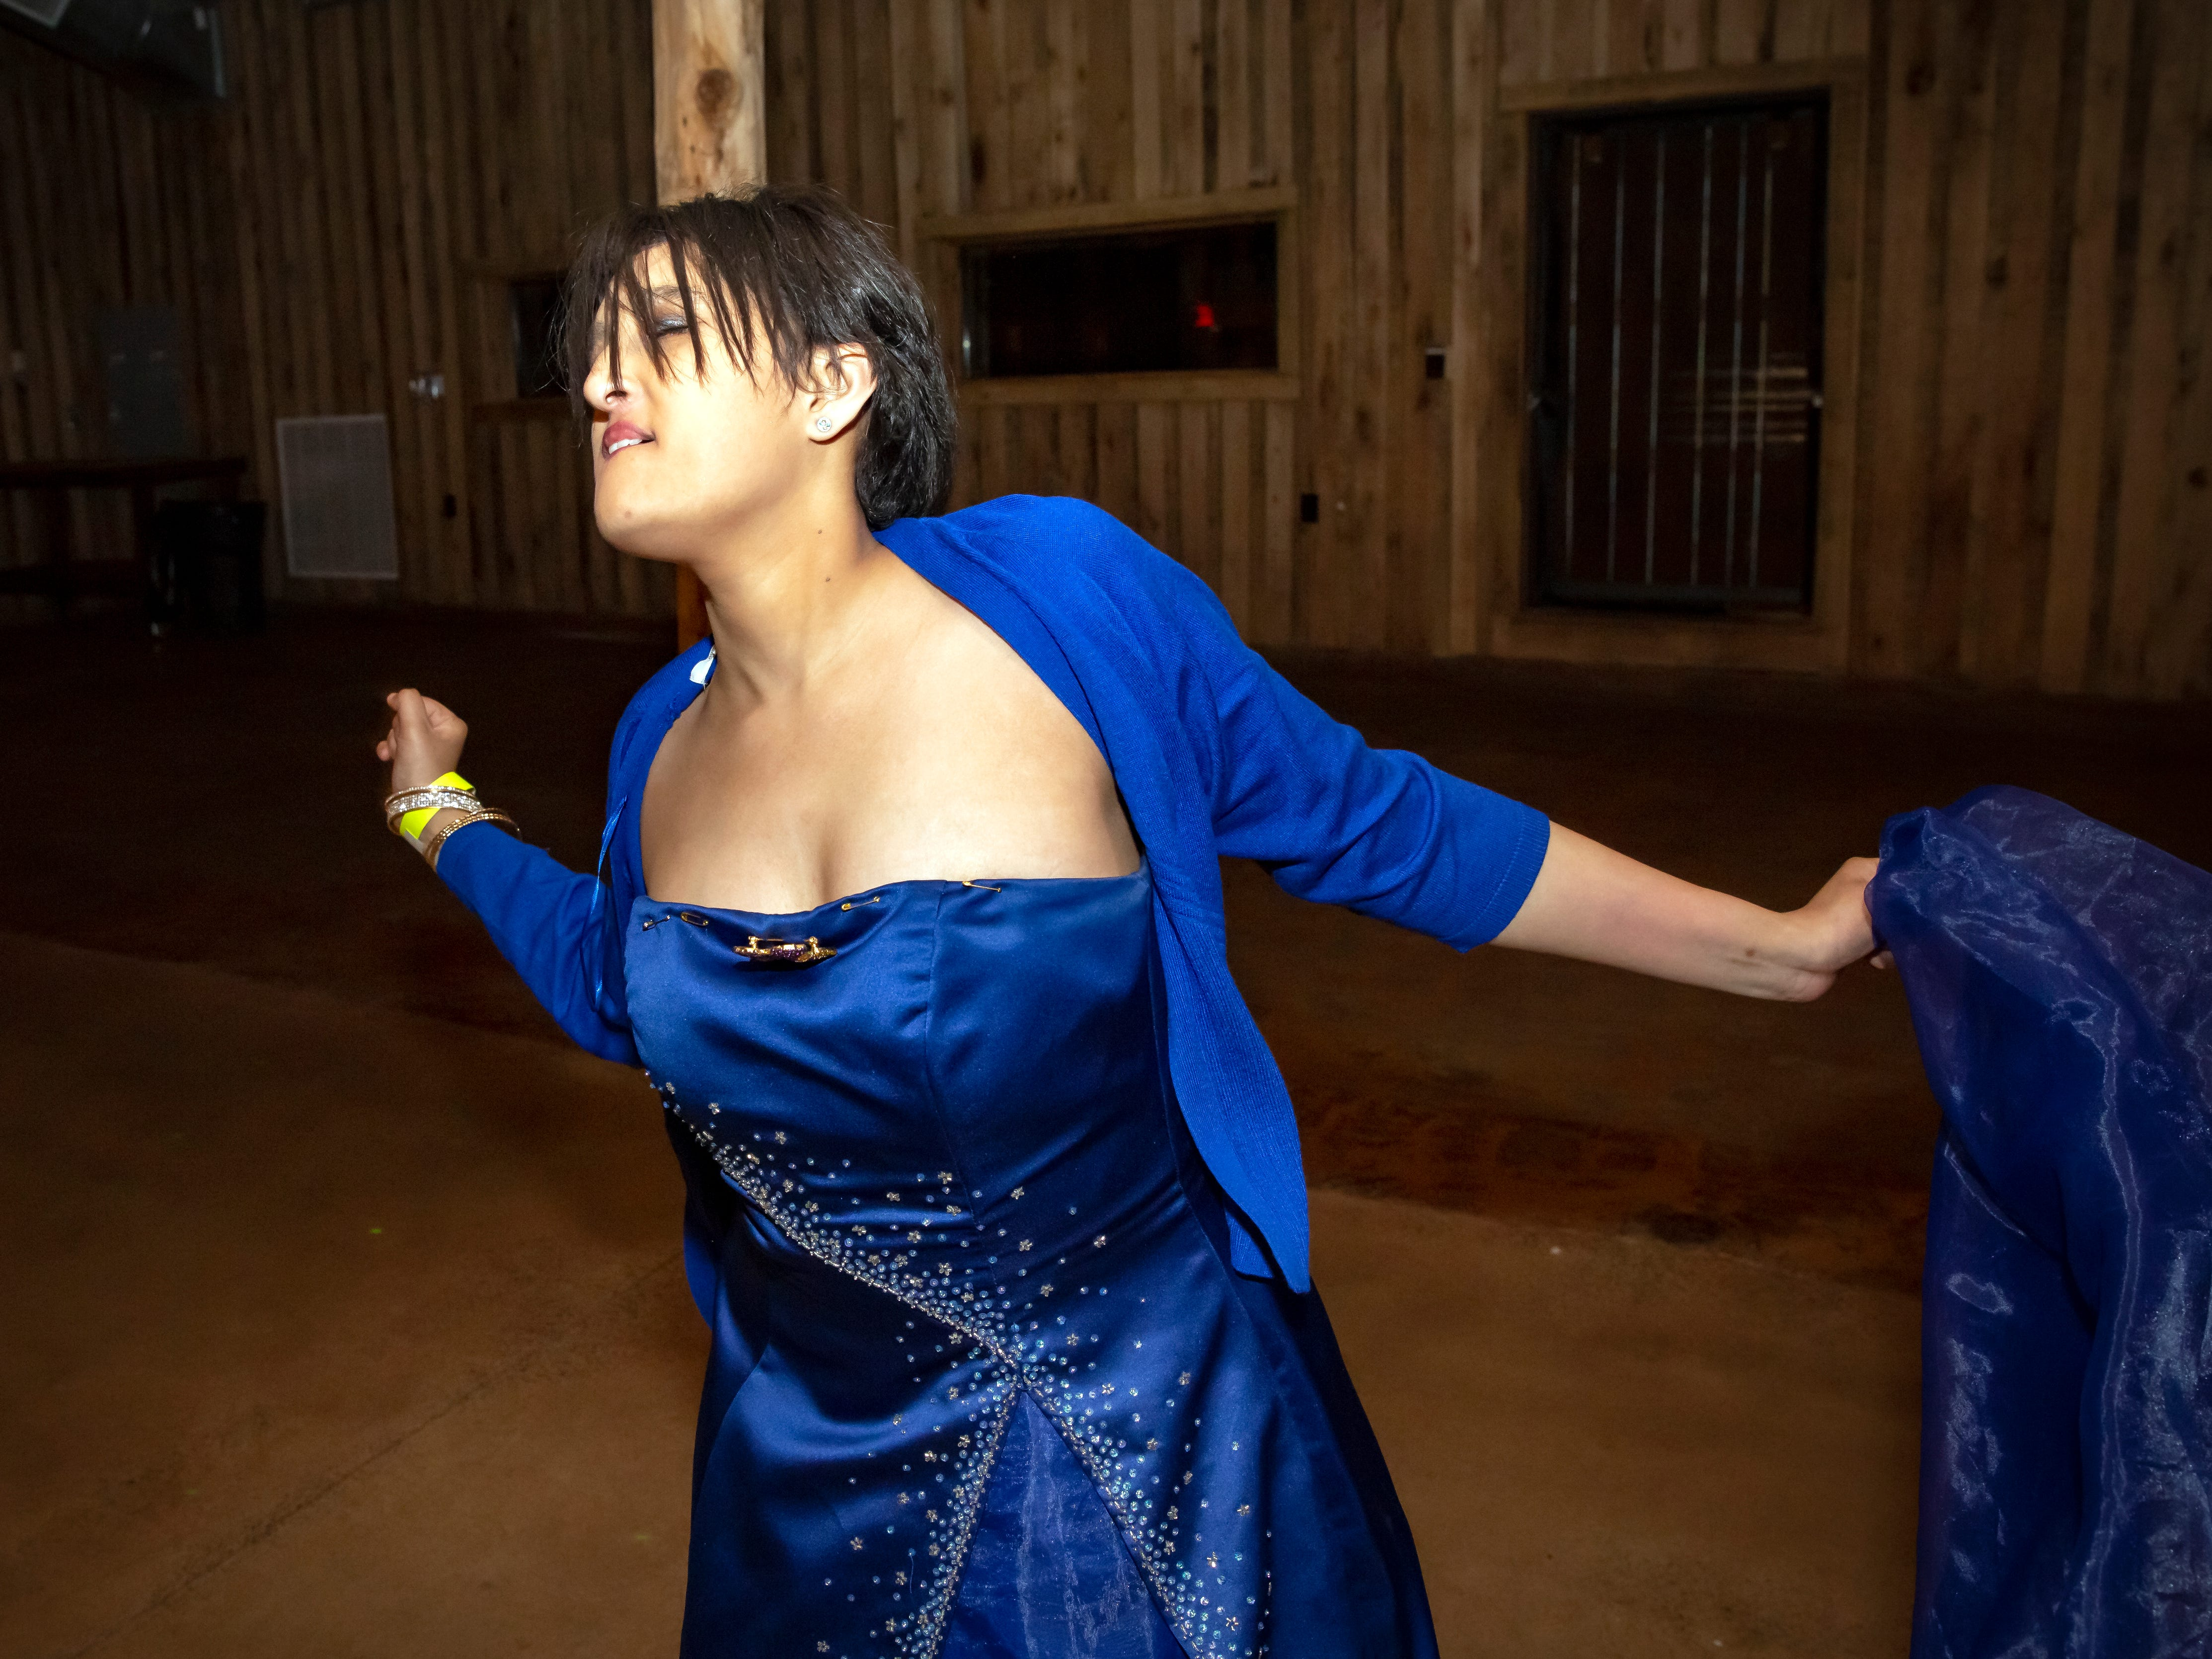 Becki Robinson dances to the music at the Smyrna High School prom held at the Grove, Friday, April 26, 2019.